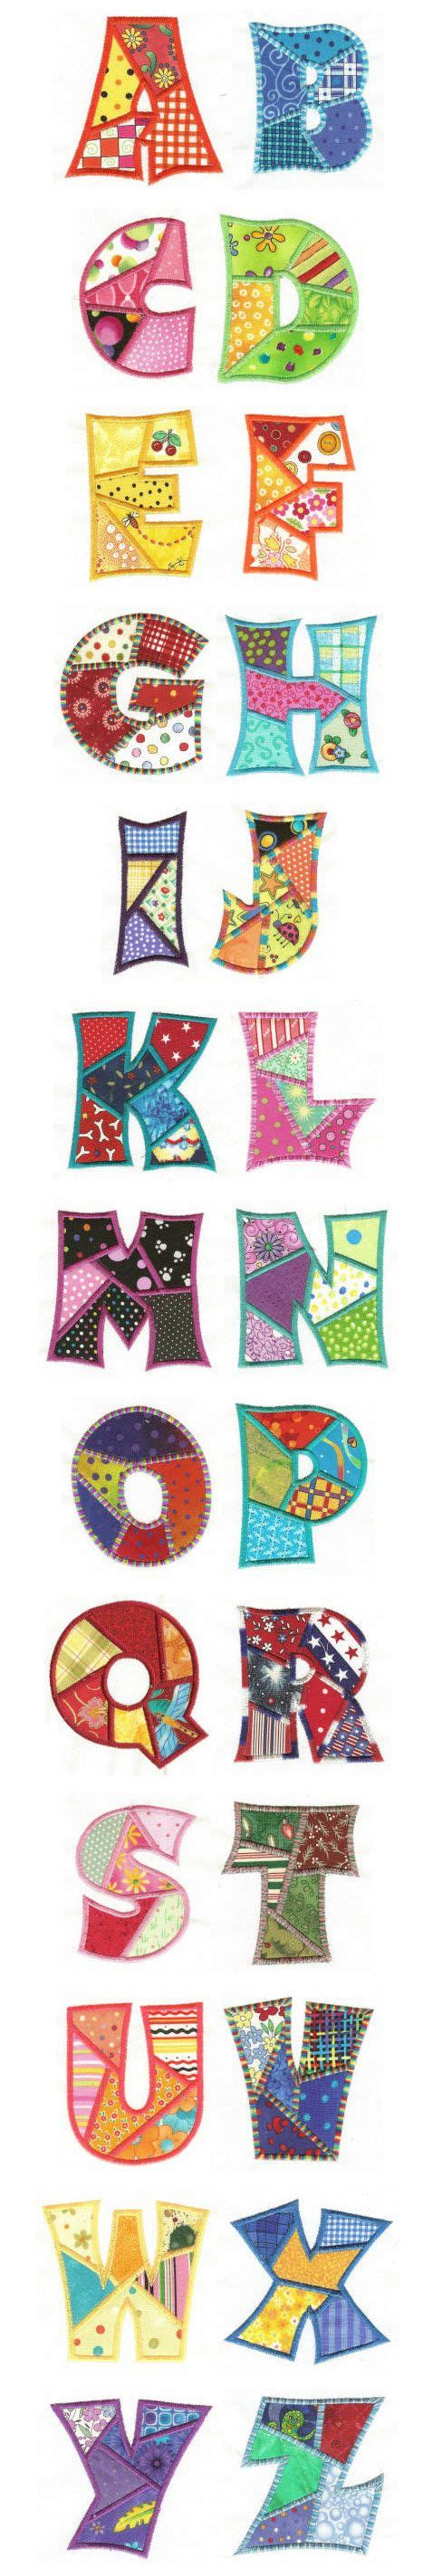 Patchwork Applique Patterns Free - crafting design and machine embroidery designs on